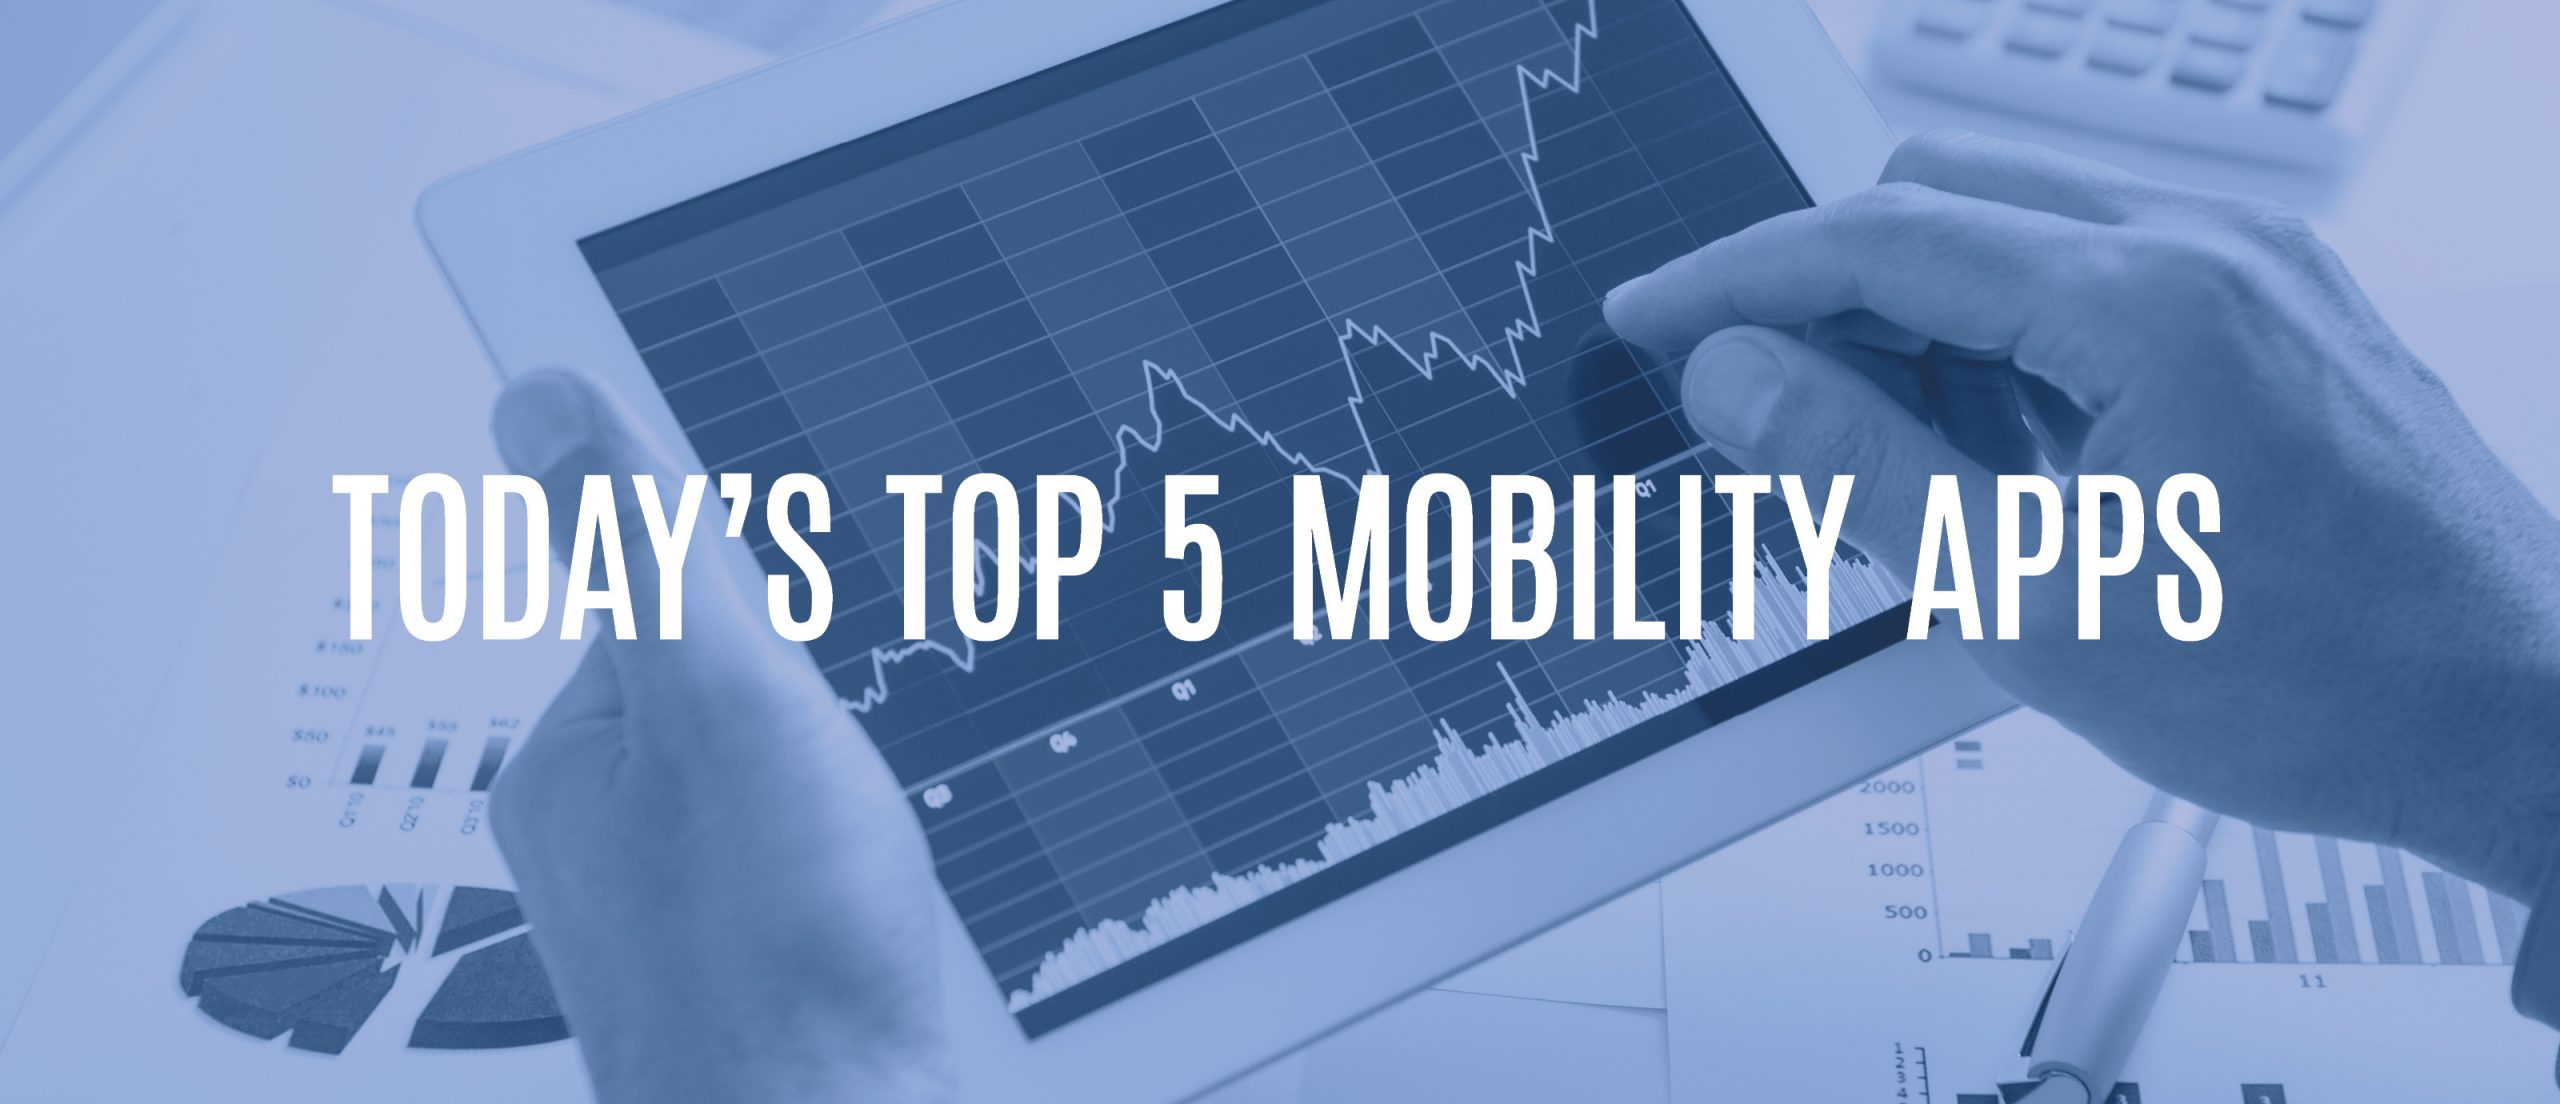 Blog Title - Today's top 5 mobility apps